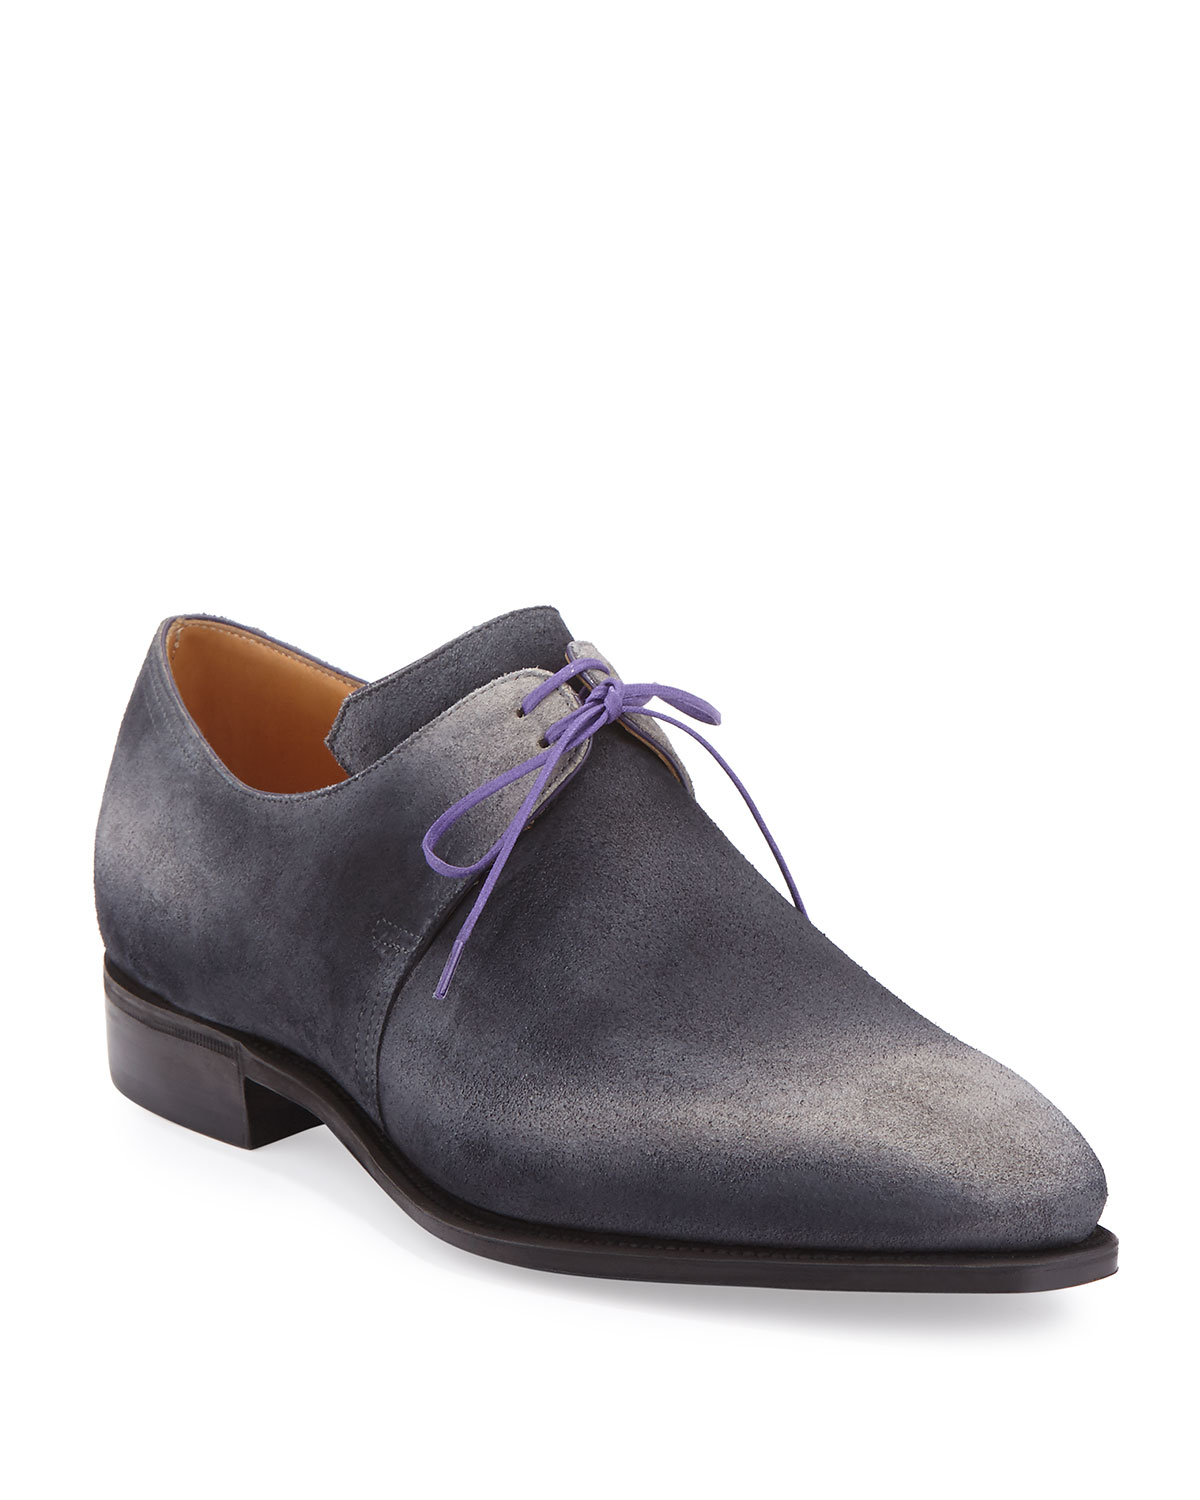 Corthay Arca Suede Purple Derby Shoe with Flint Patina & Purple Suede Piping, Grey c0e315